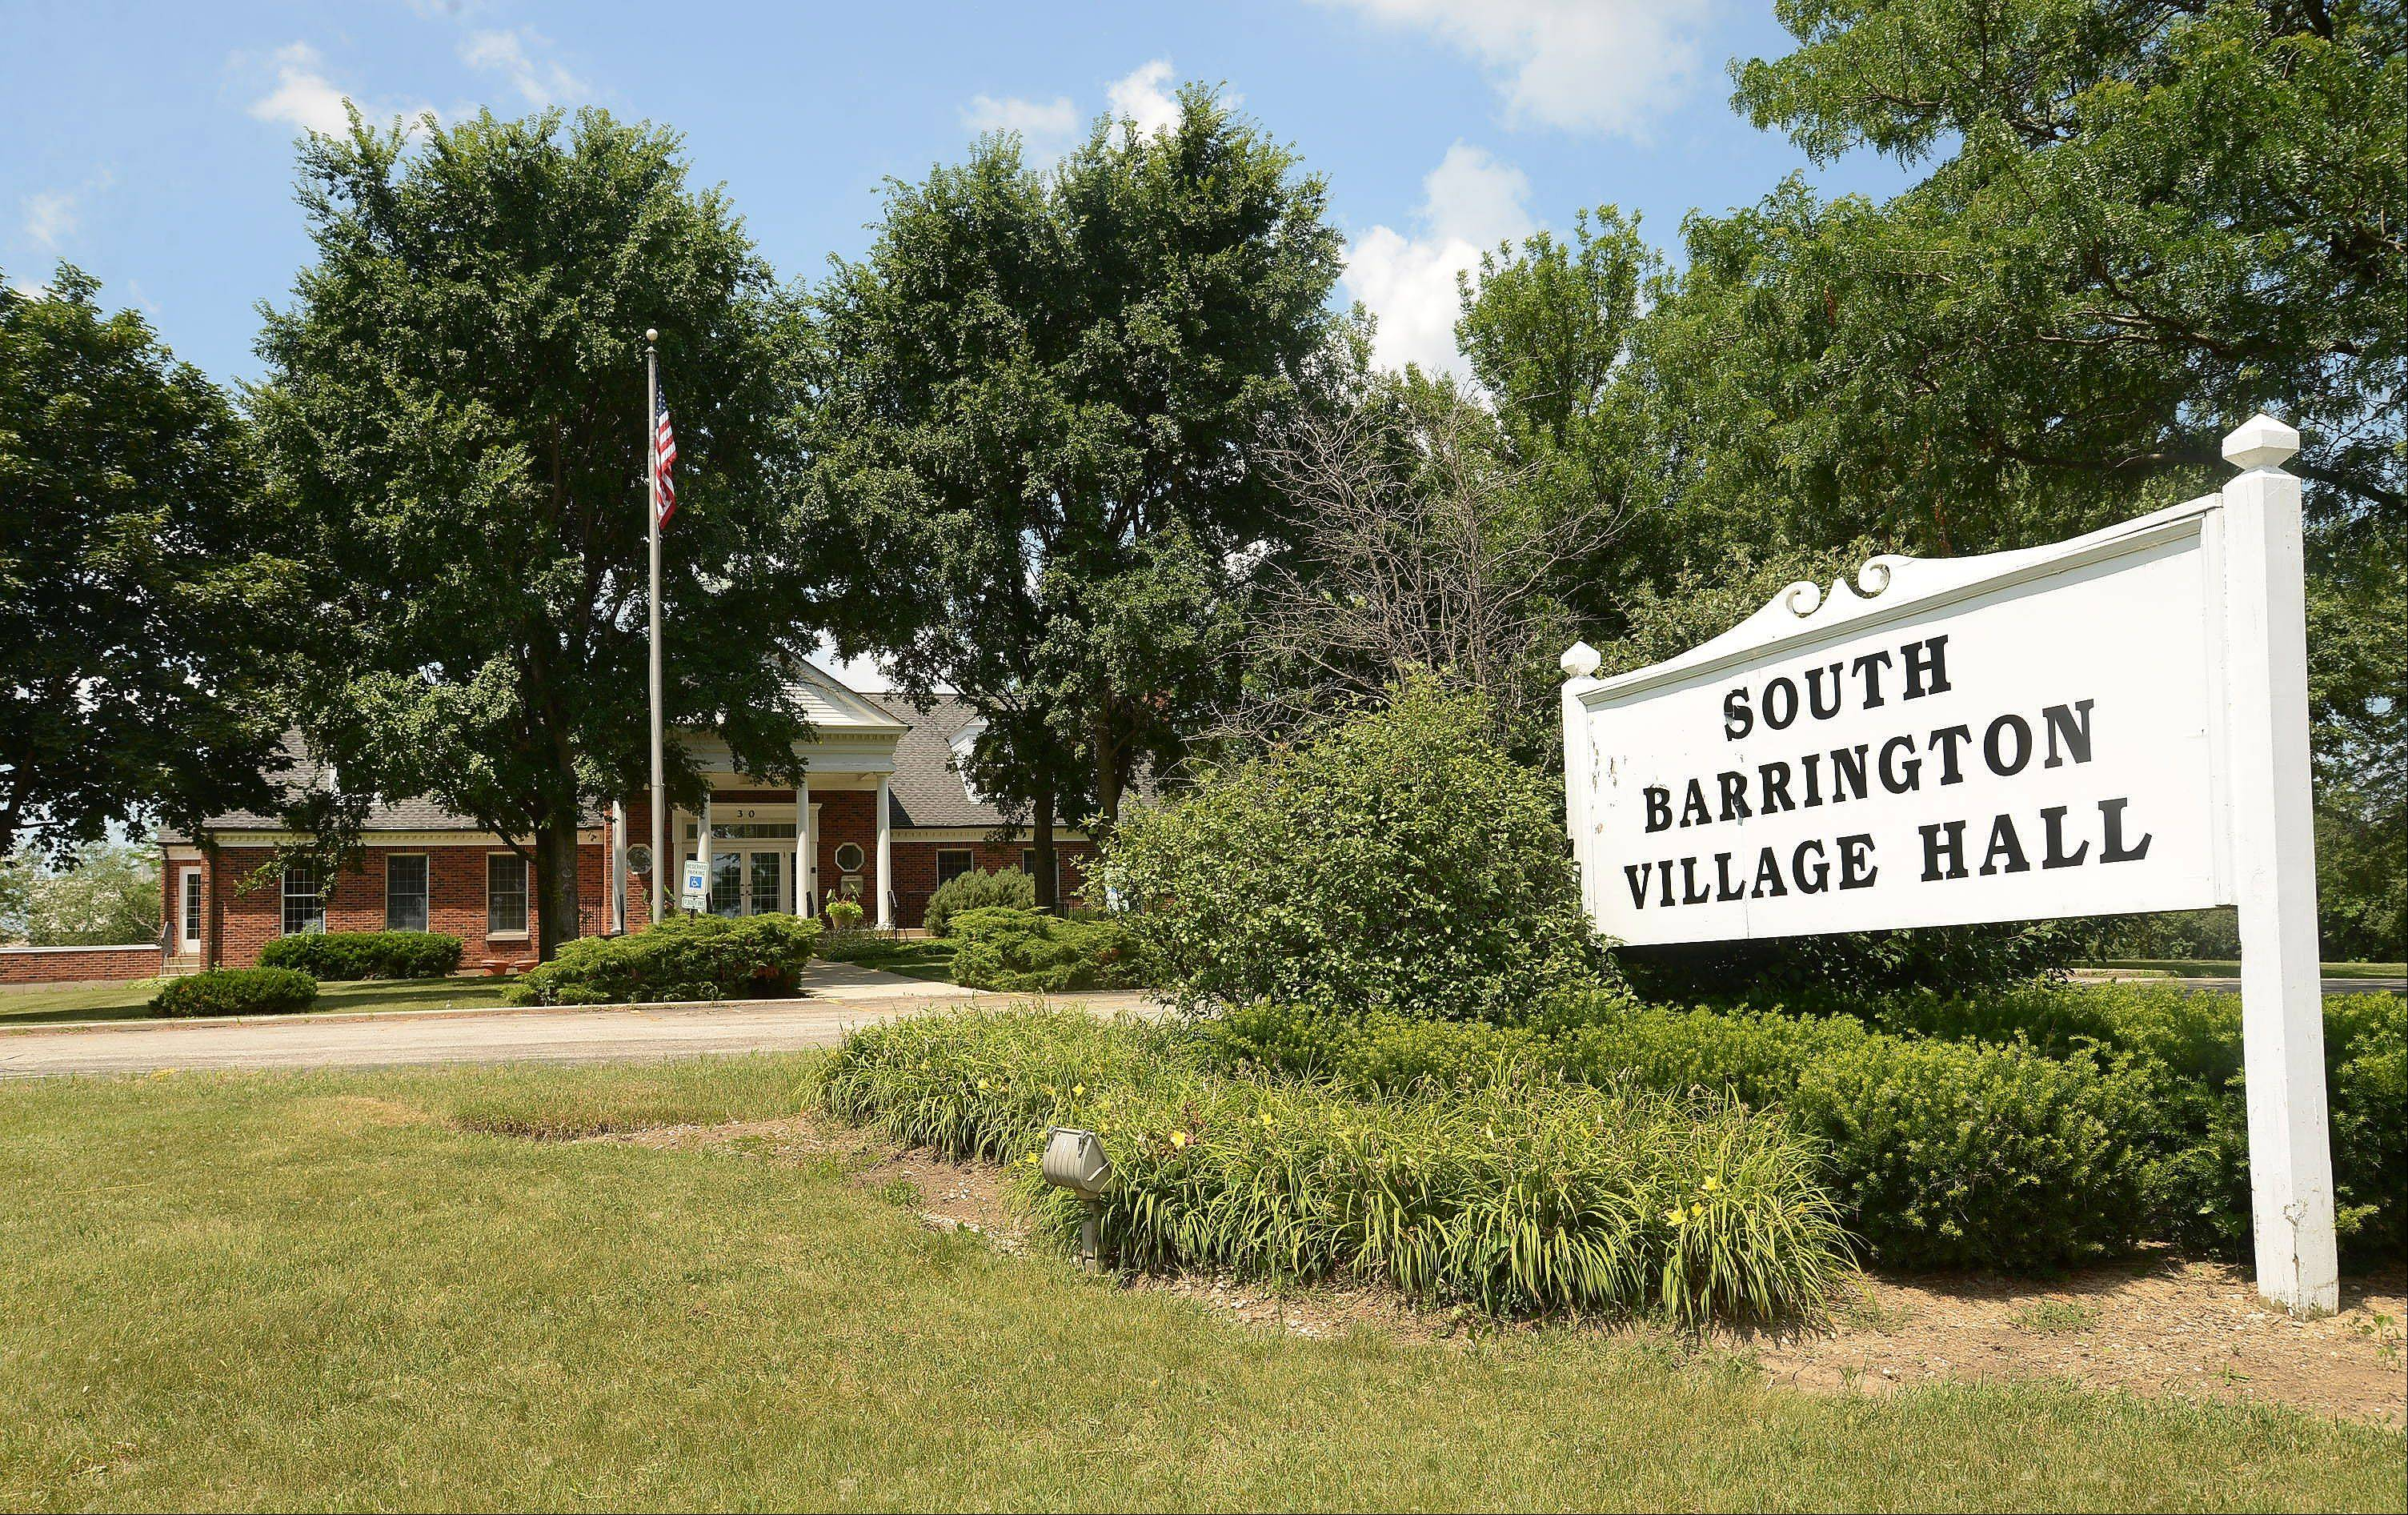 South Barrington is prepared to approve a $2.08 million construction contract Thursday for the expansion of village hall. The work would begin in August and finish in March 2014.